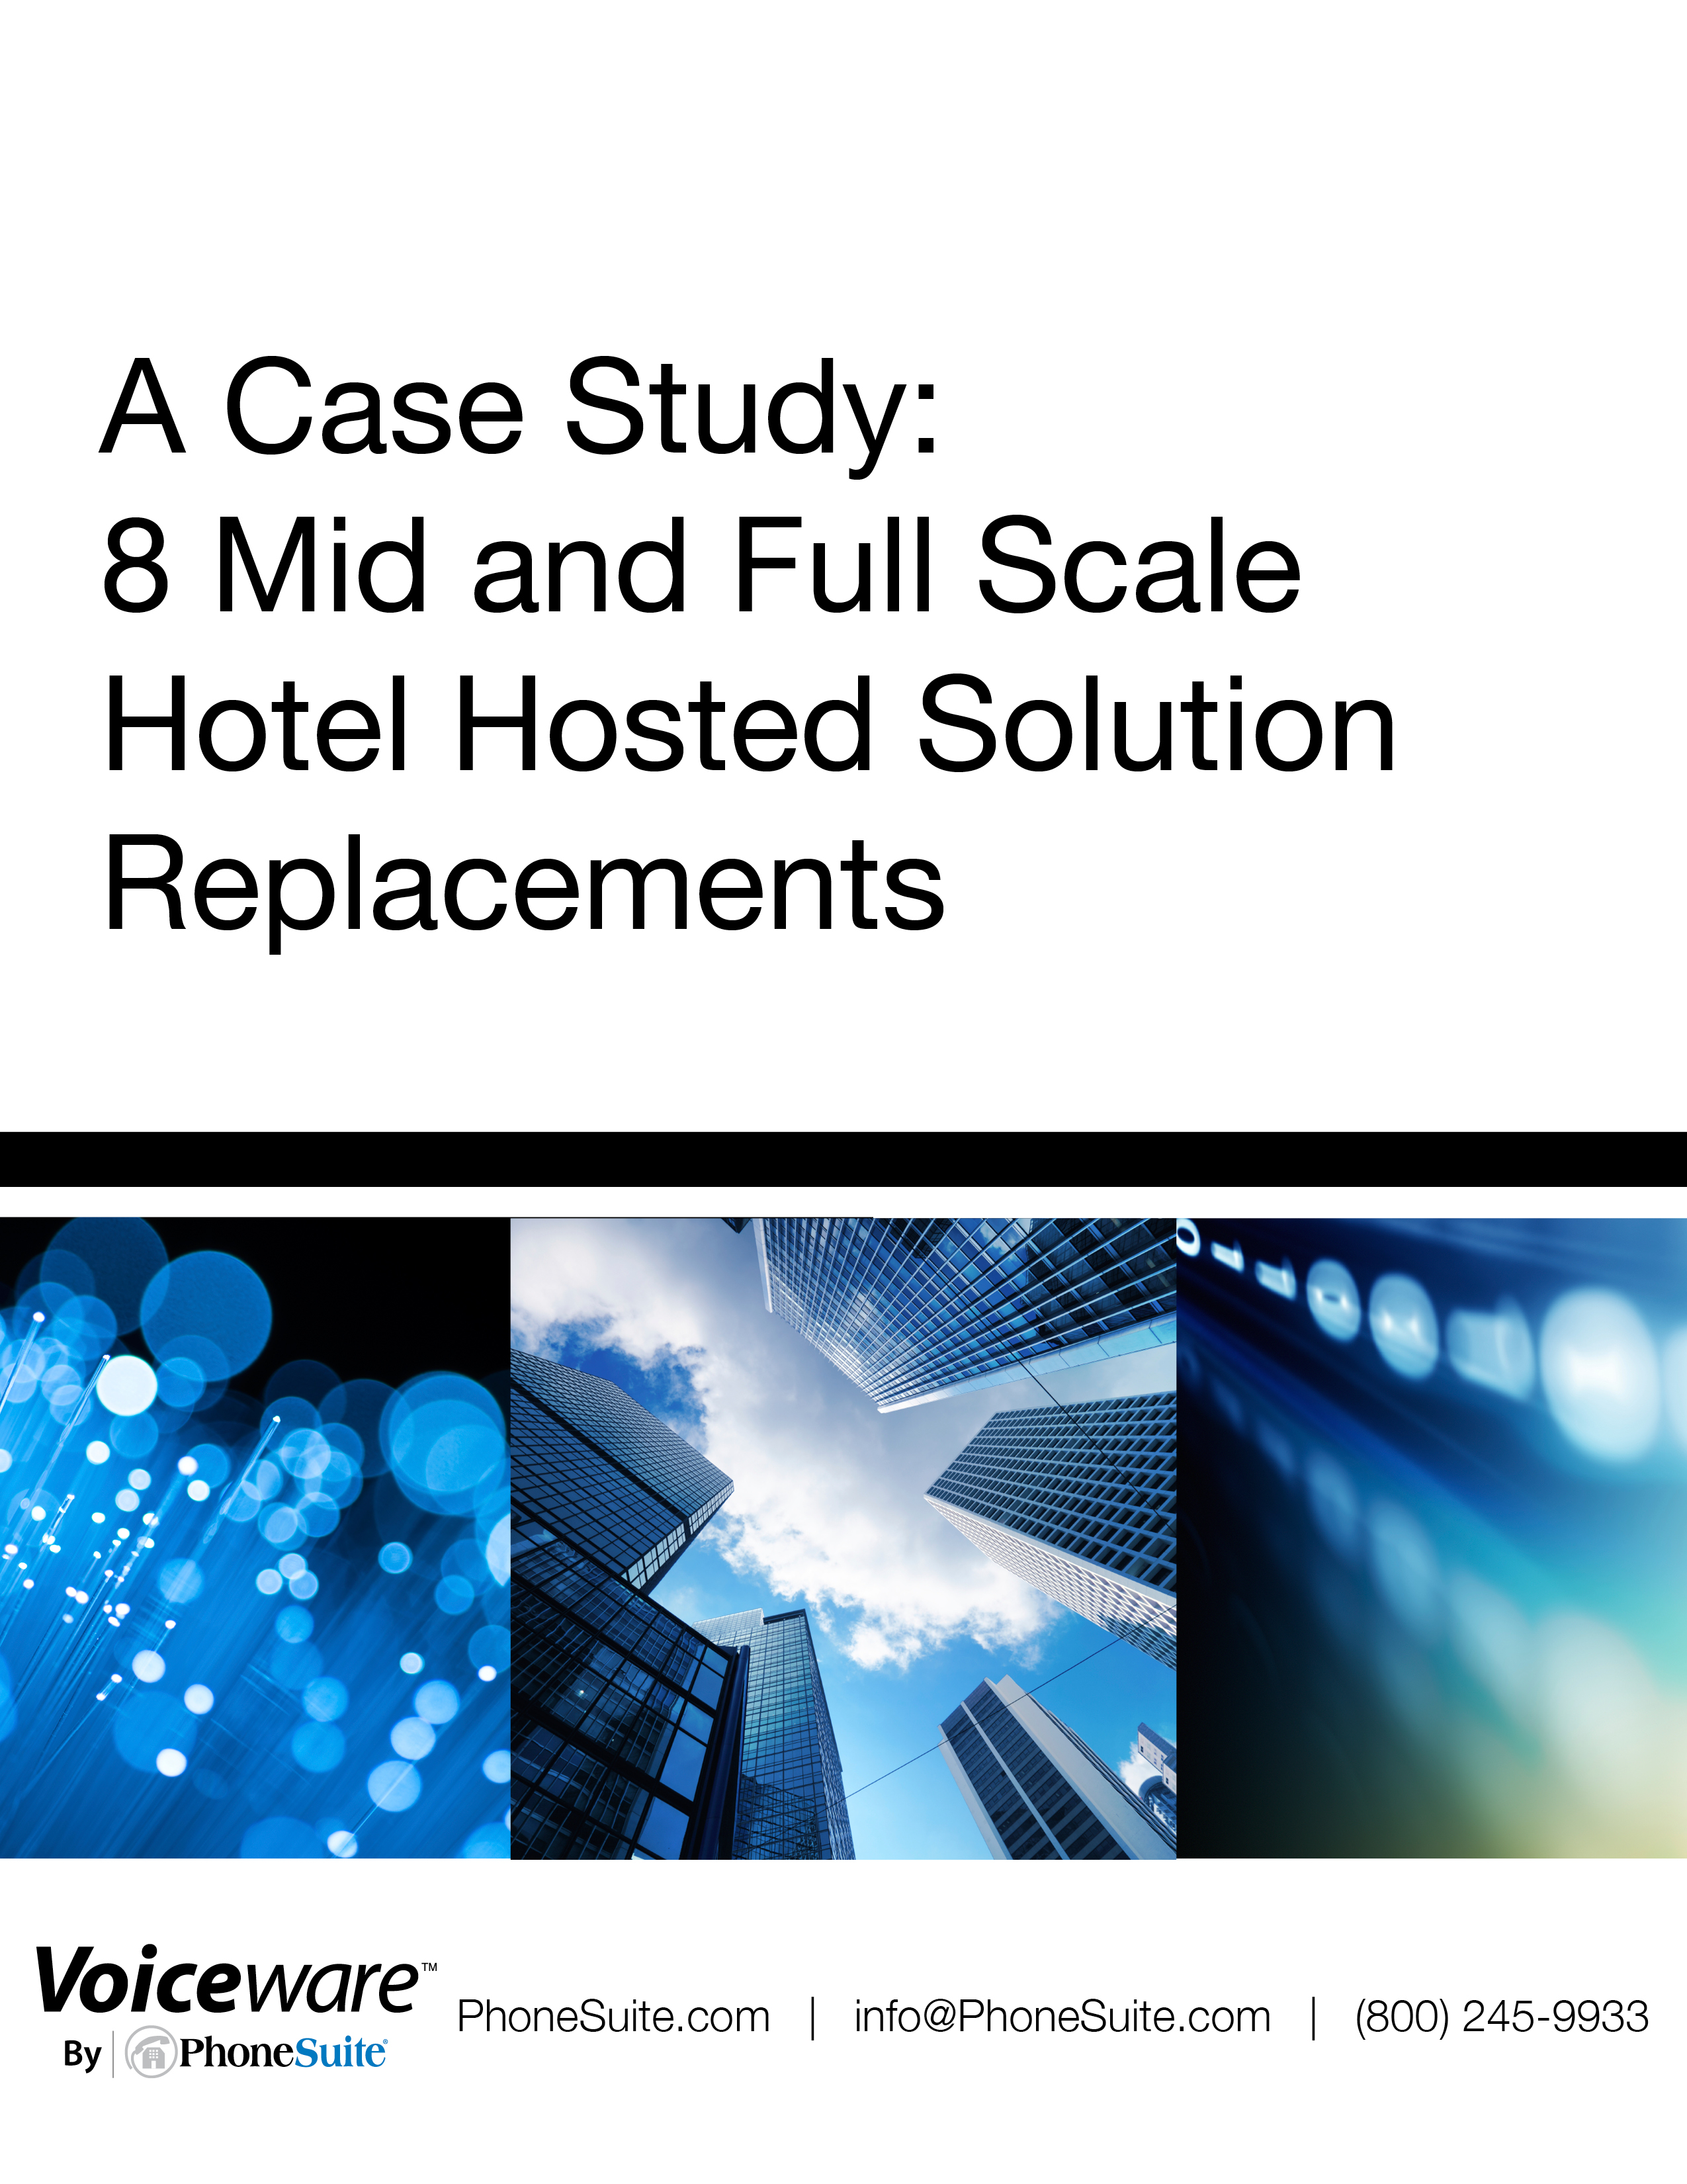 A Case Study: 8 Mid and Full Scale Hotel Hosted Solution Replacements